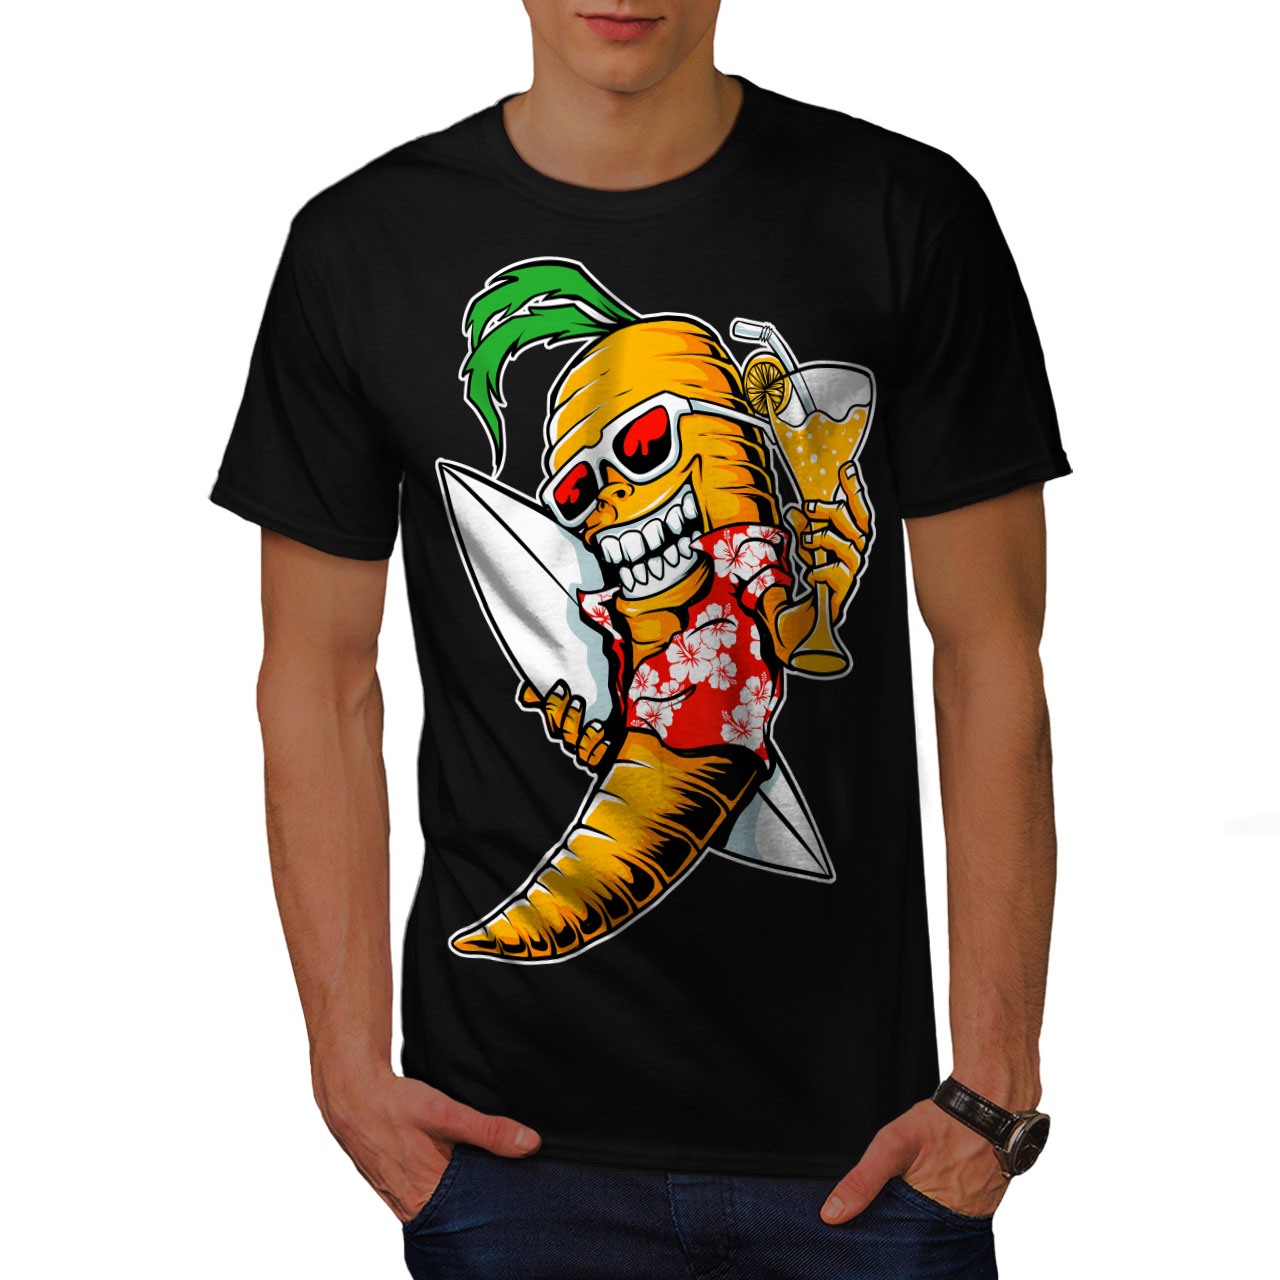 6a362c35 Wellcoda Surf Vegetable Funny Mens T-shirt, Summer Graphic Design ...